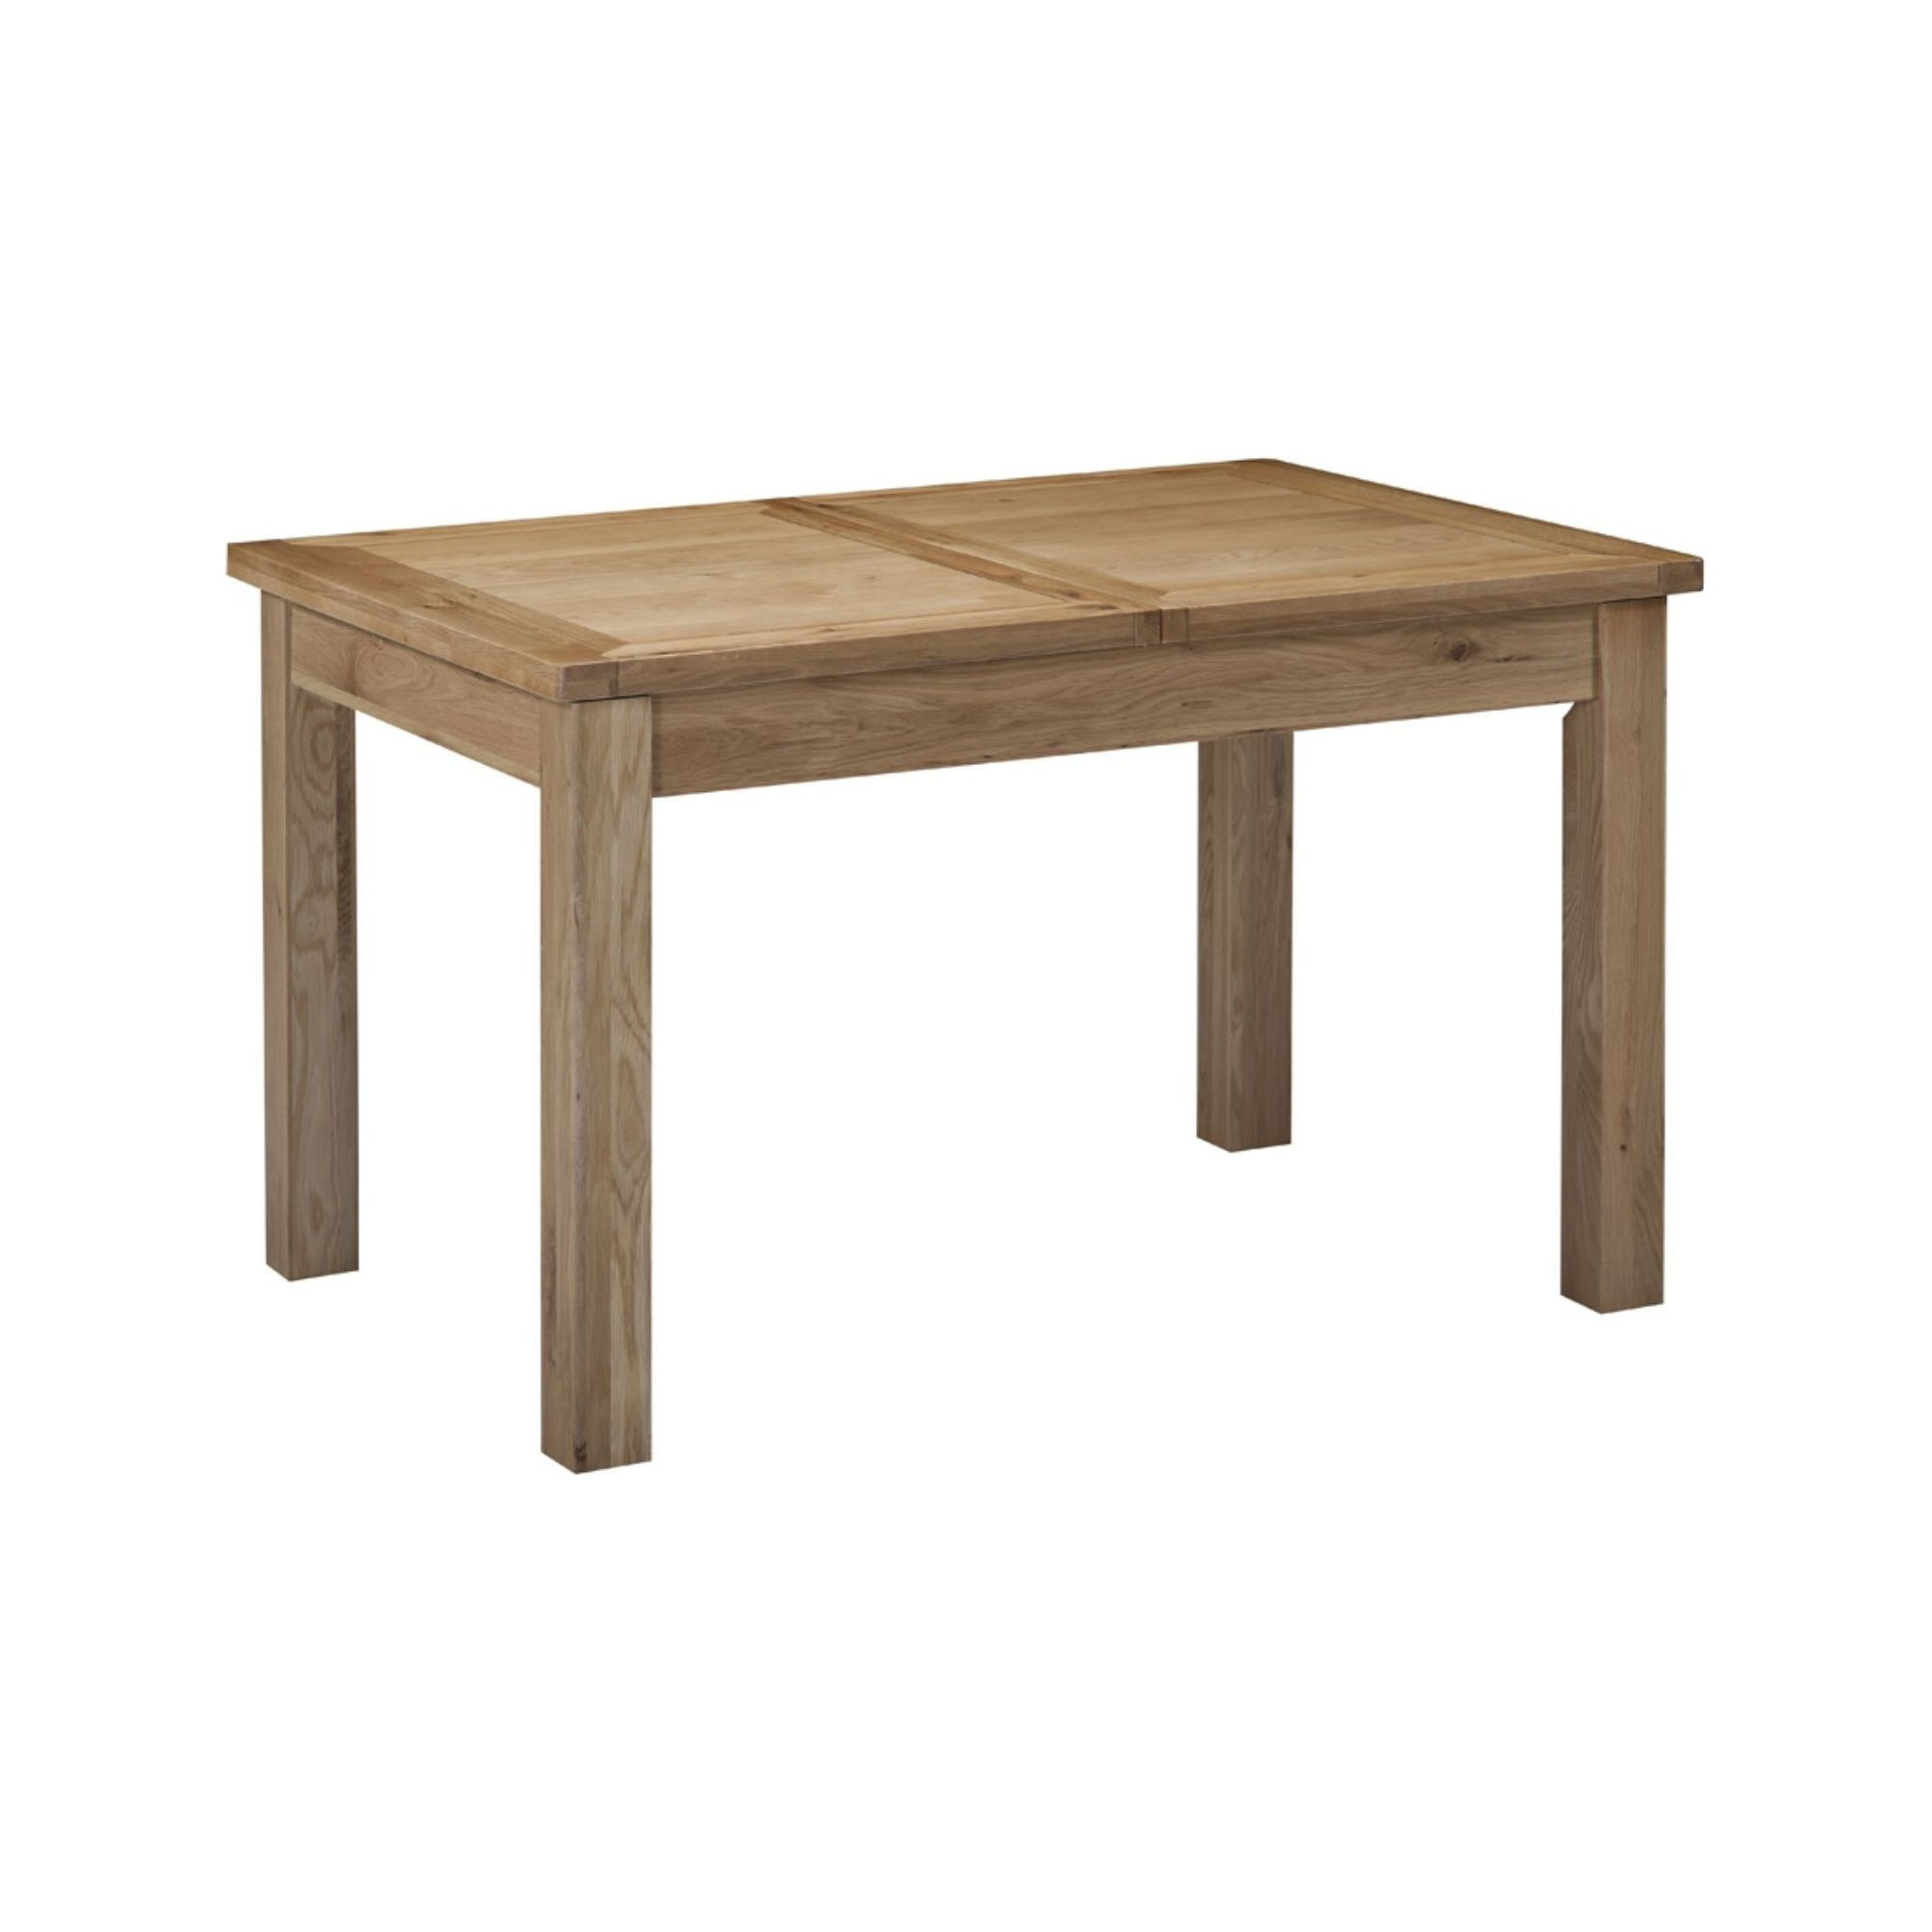 Kelburn Furniture Lyon Small Extending Dining Table in Light Oak Matt Lacquer